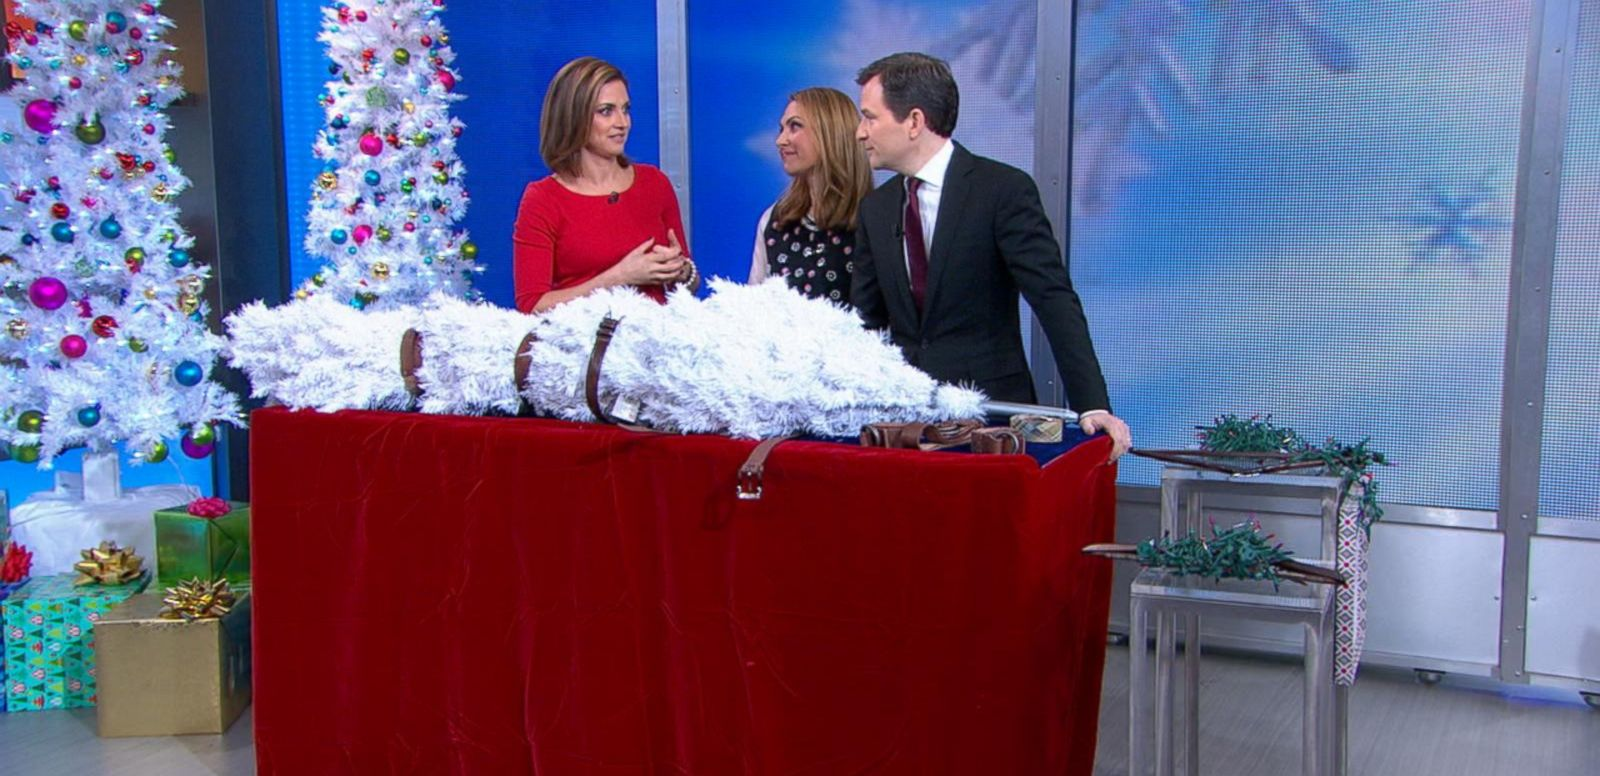 VIDEO: Tips for Tidying Up Holiday Trimming